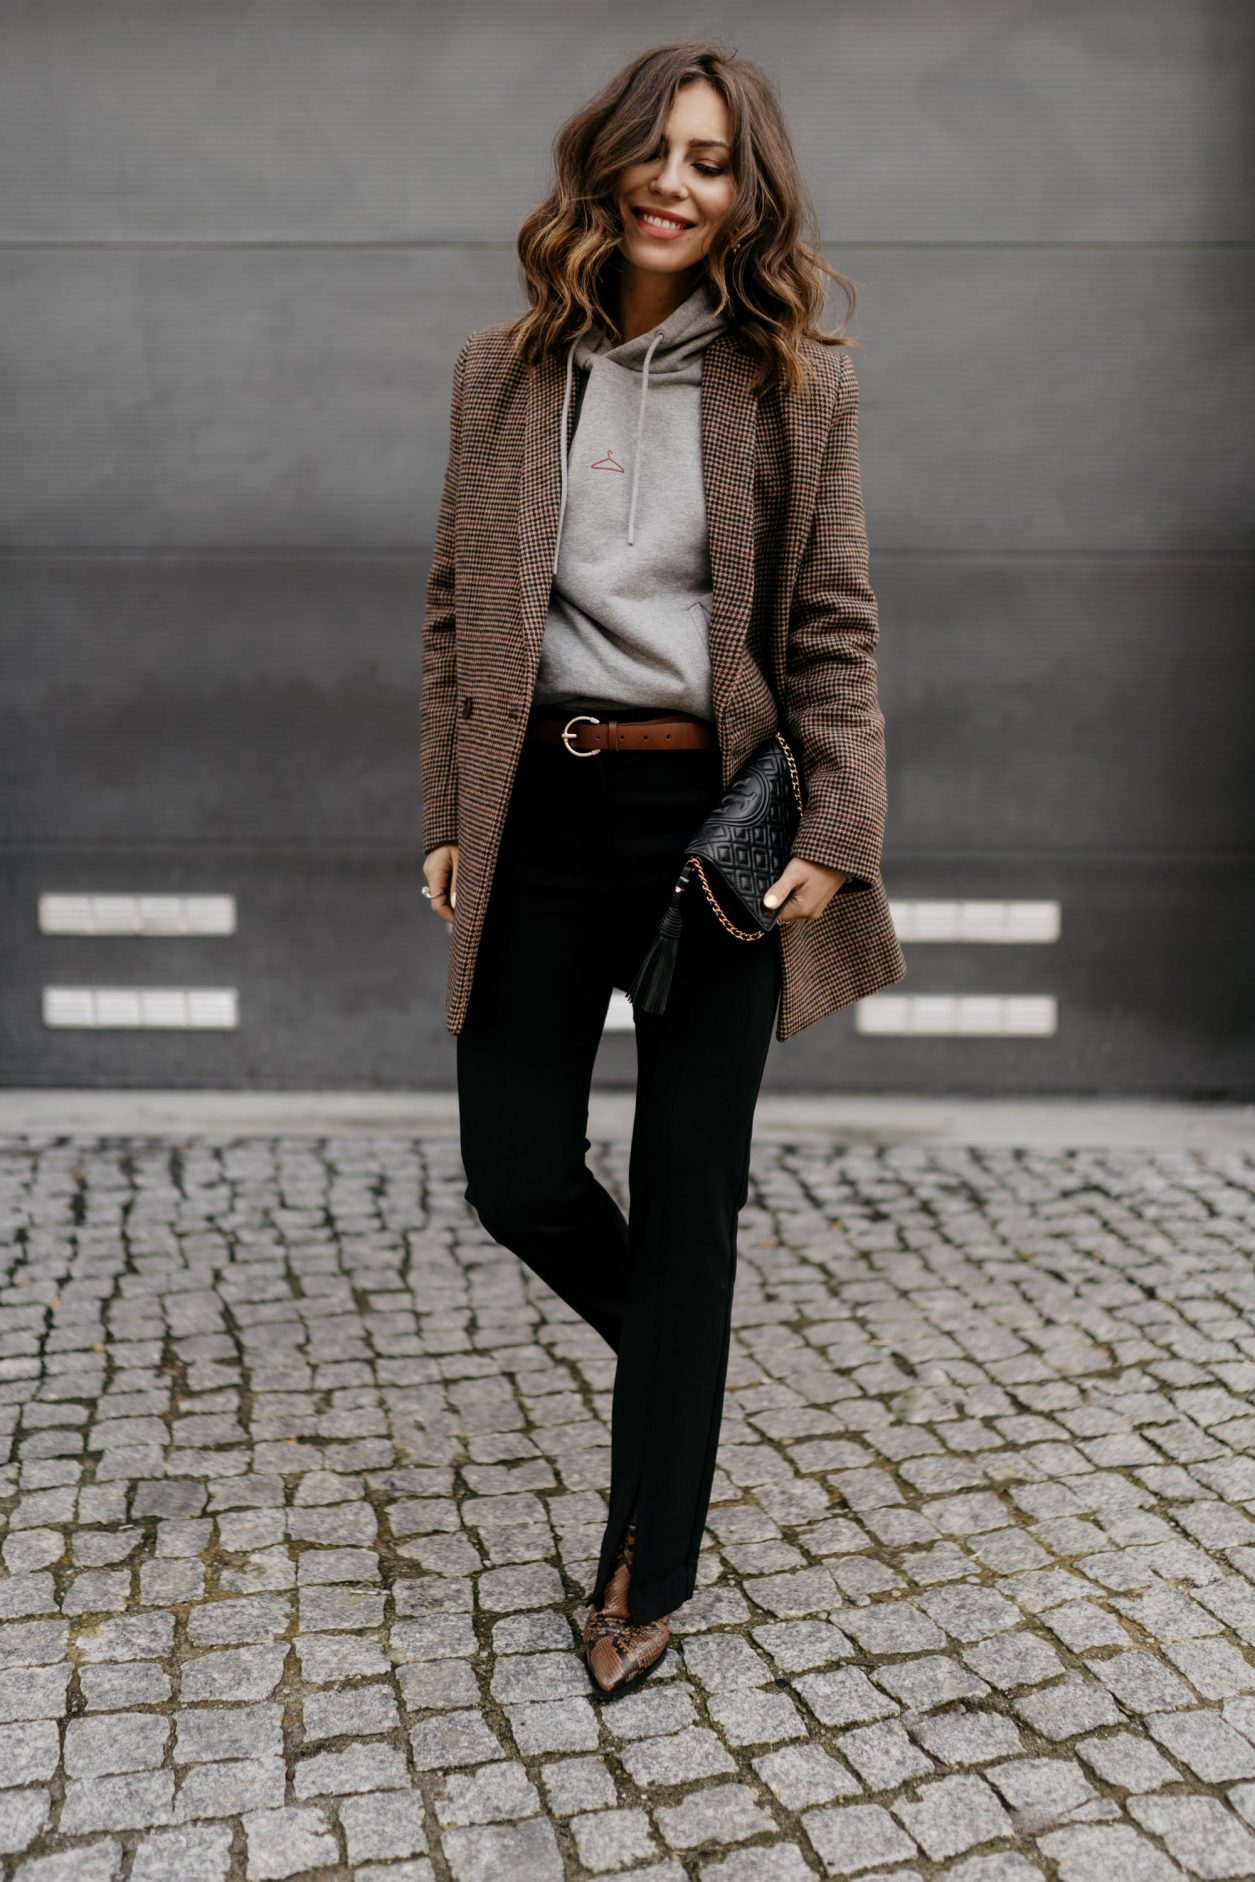 Streetstyle by Masha Sedgwick | Fashion blogger from Berlin, Germany | Everyday business casual outfit inspiration, wearing brown checked Samsoe Samsoe blazer, light grey logo Holzweiler hoodie, brown leather Zign belt, front splits black tailored pants by Samsoe Samsoe, brown sneak leather open boots by Zign, Tory Burch shoulder mini bag